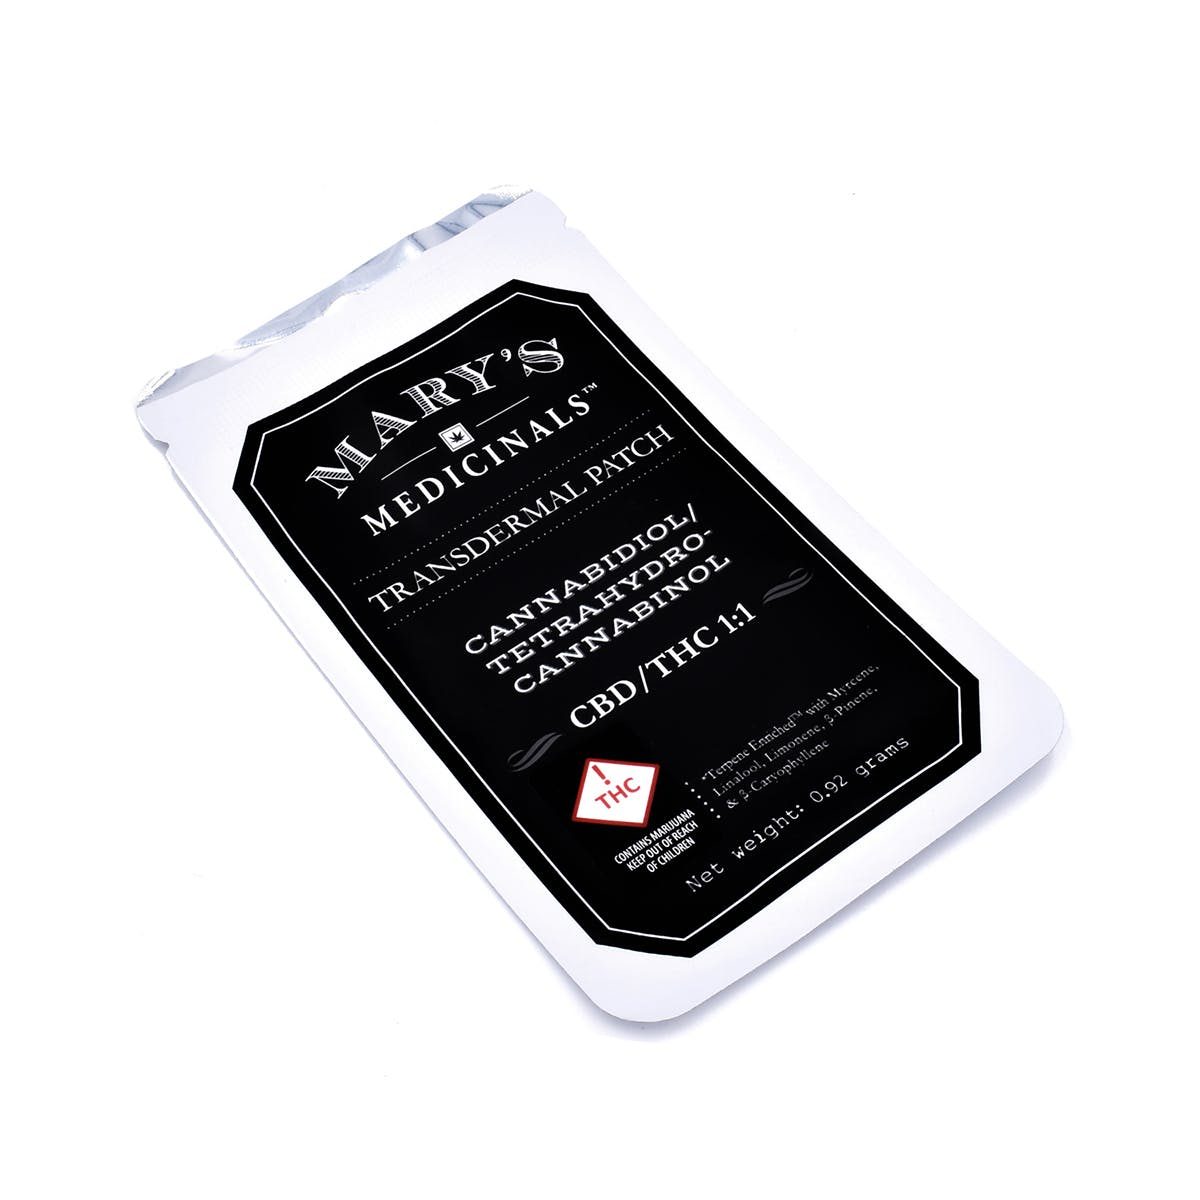 marijuana-dispensaries-ascend-cannabis-co-in-denver-cbd-thc-11-transdermal-patch-2c-10mg-rec